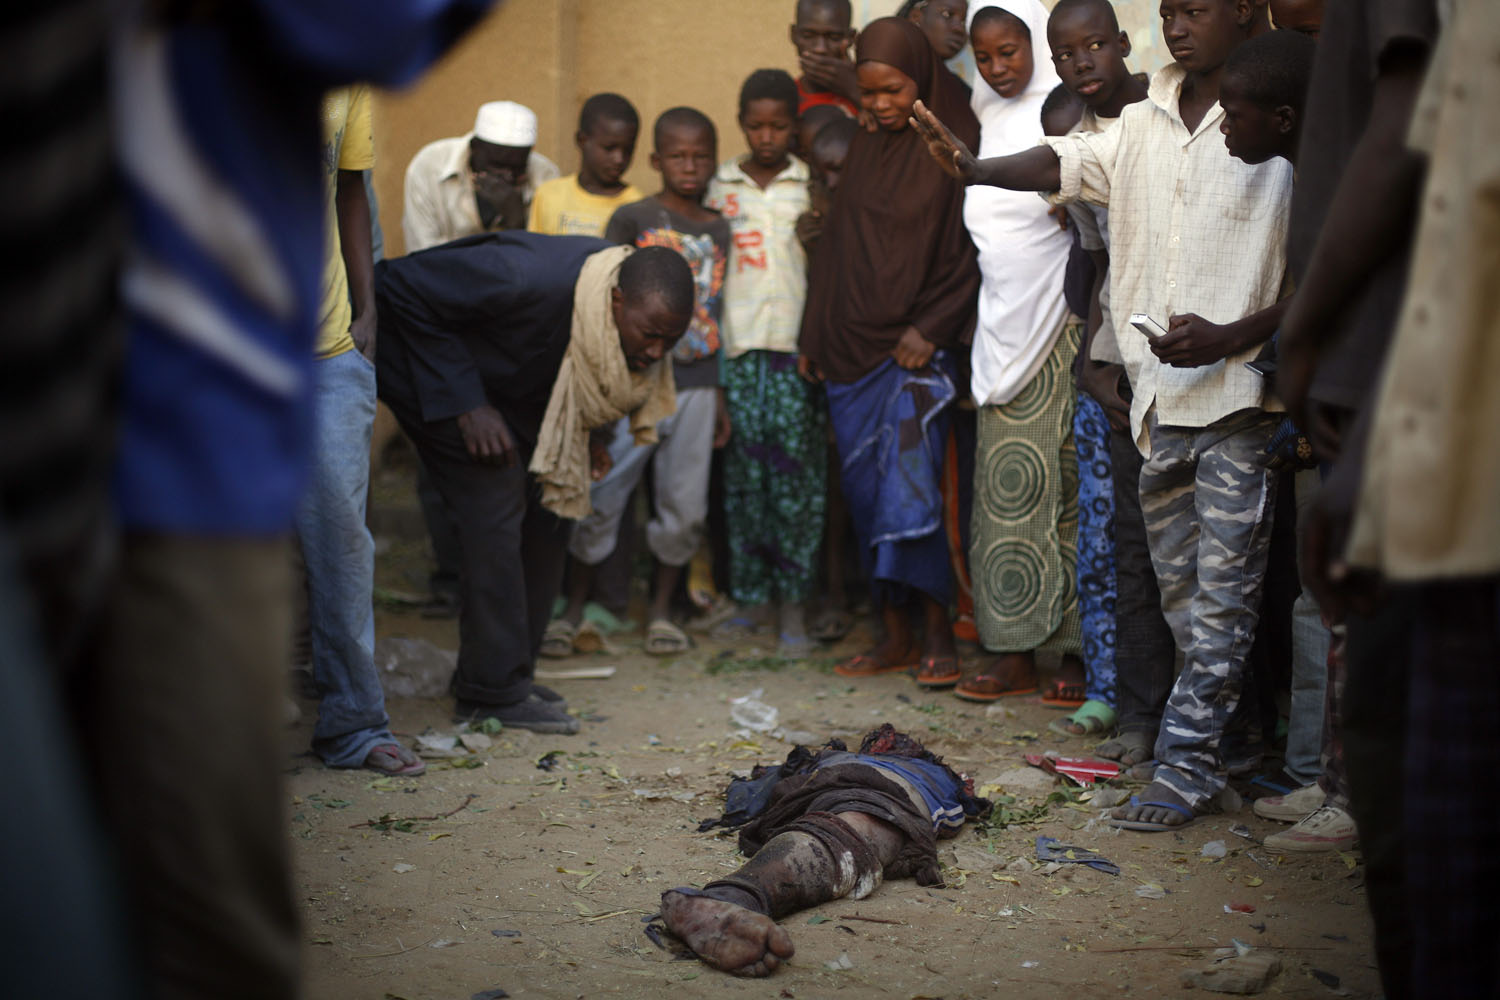 Malian people gather around the leg of an Islamic fighter outside the police station in Gao, Feb. 11, 2013.